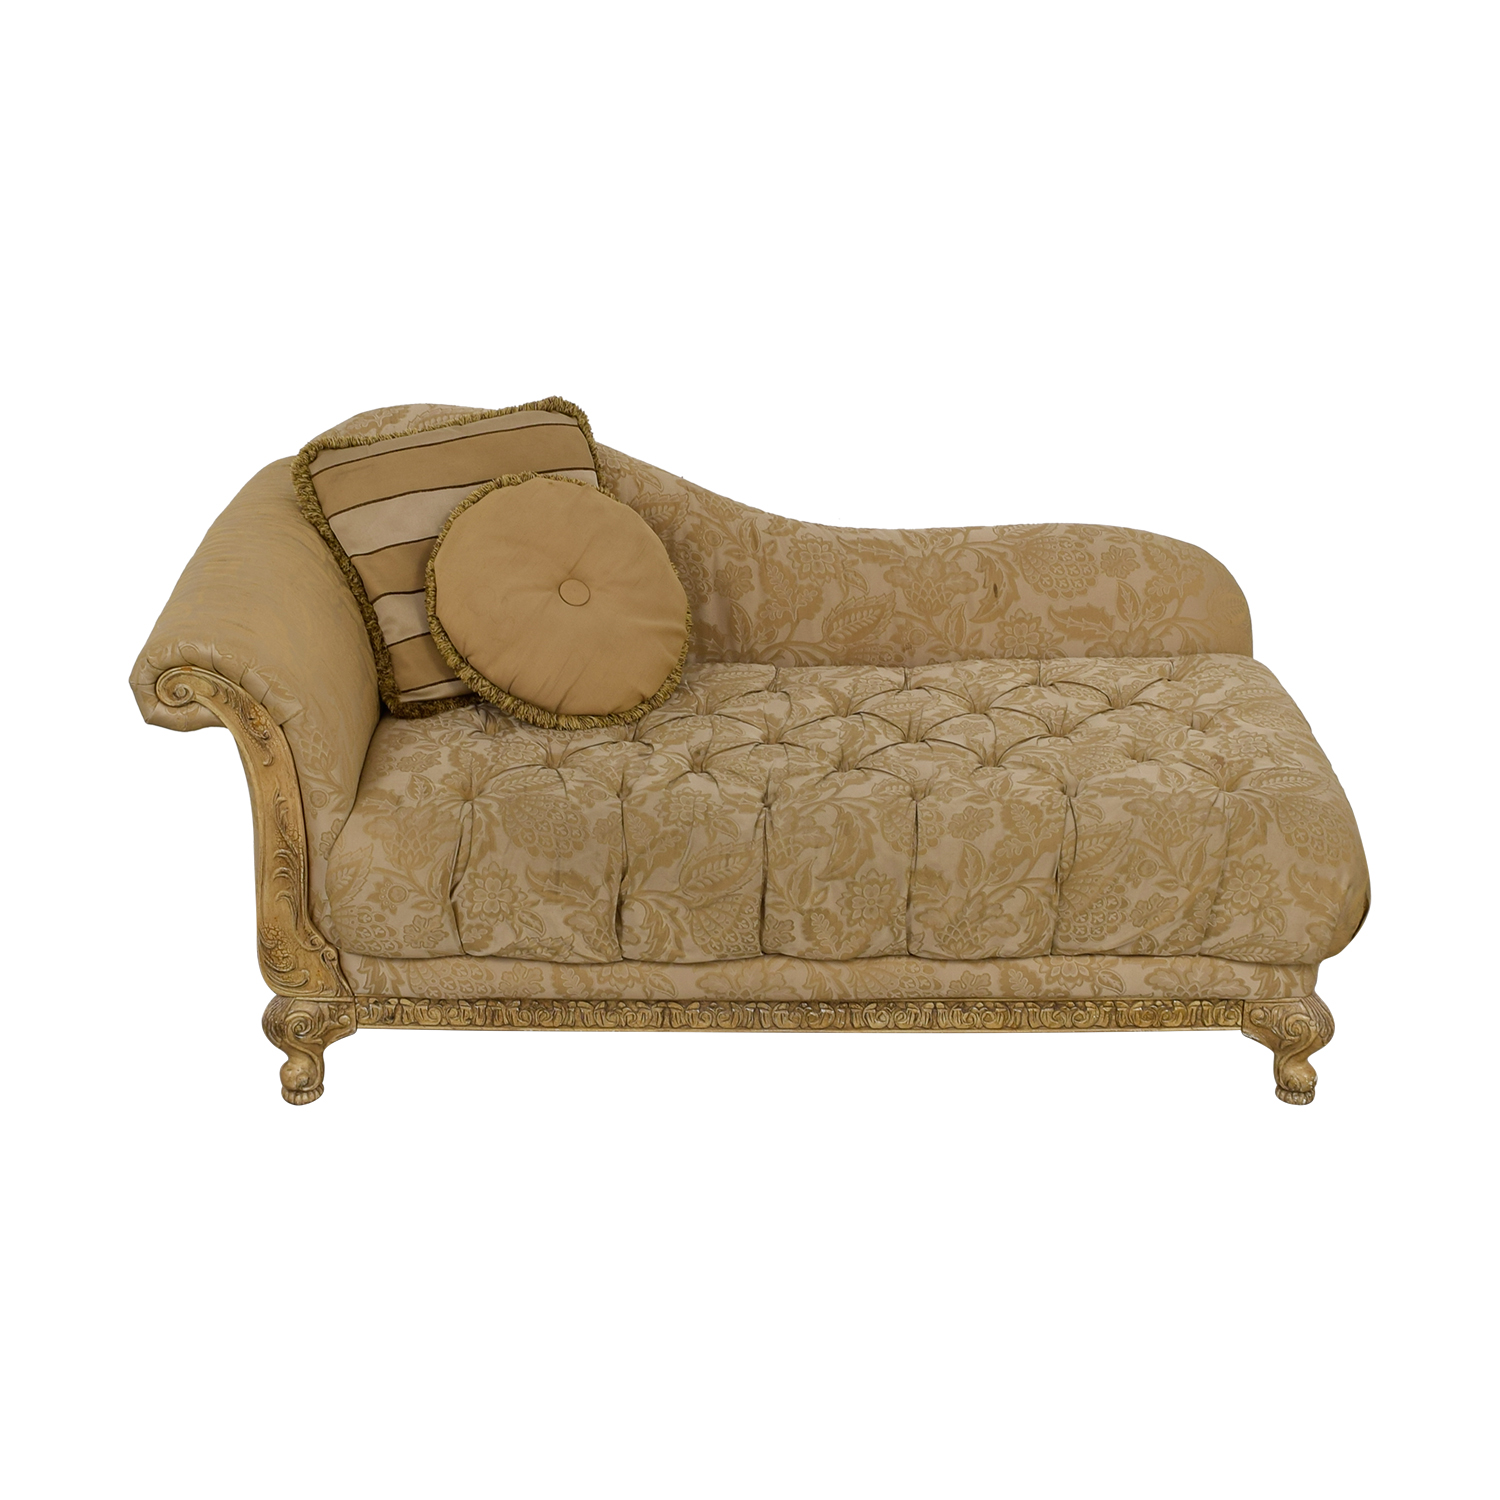 Schnadig Beige Jacquard Tufted Chaise Lounge sale